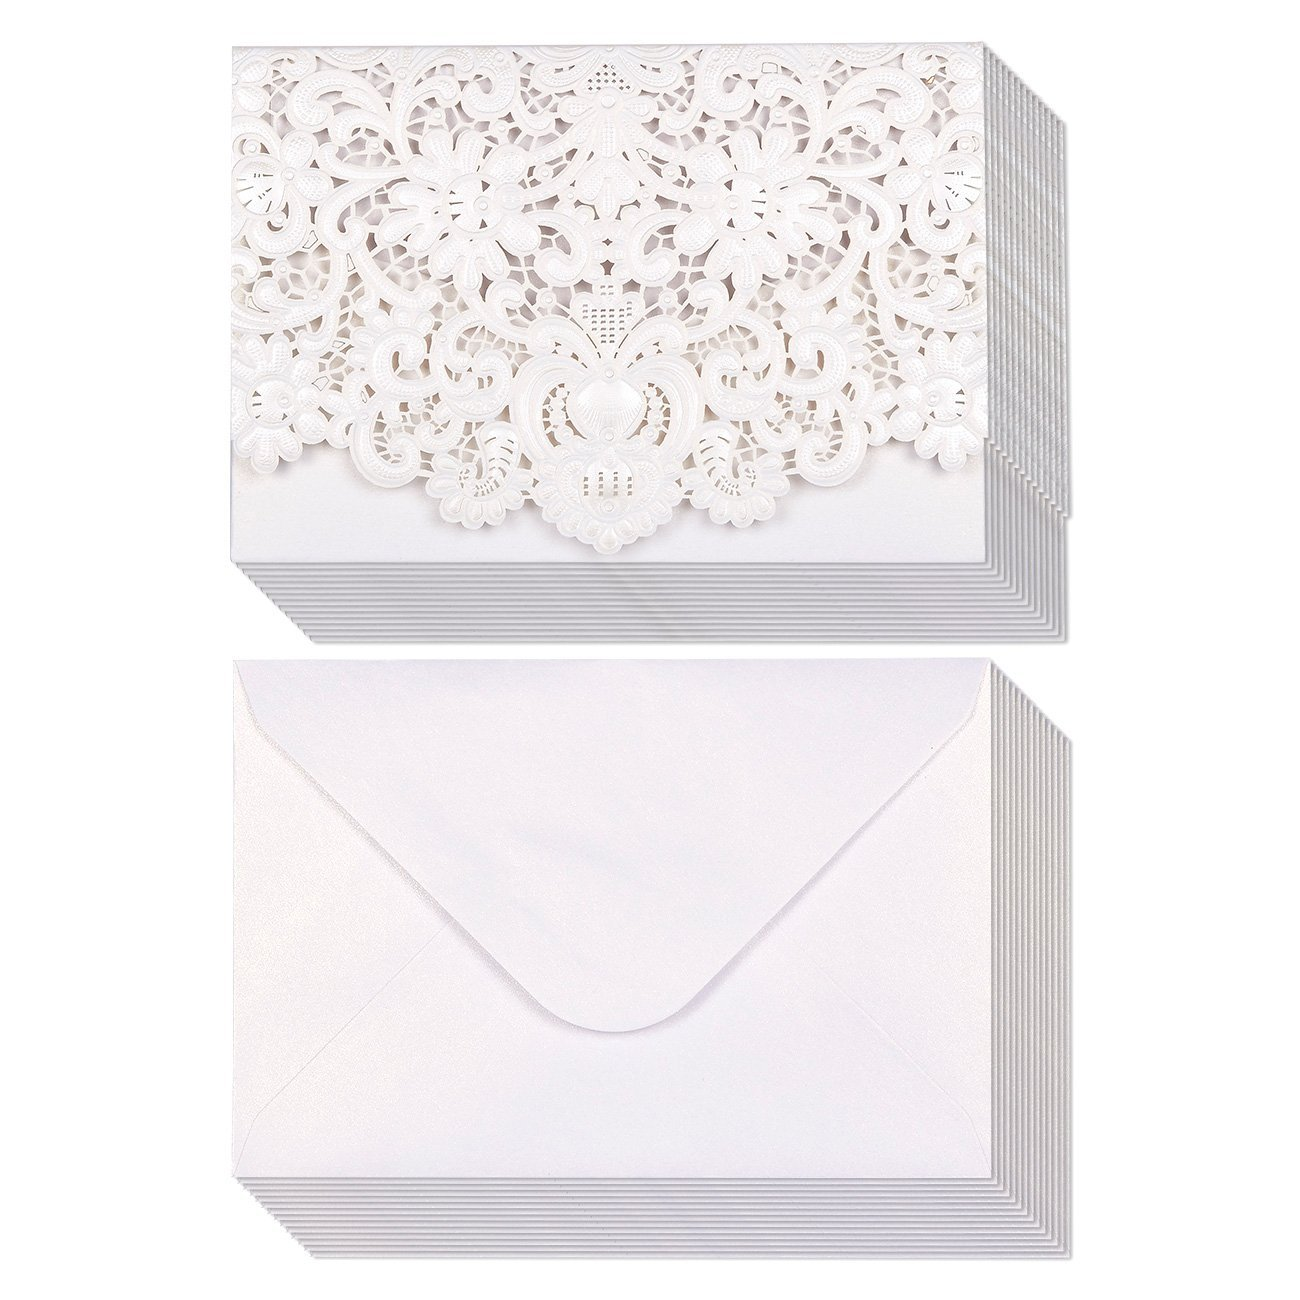 Cheap Blank Invitation Cards And Envelopes, find Blank Invitation ...